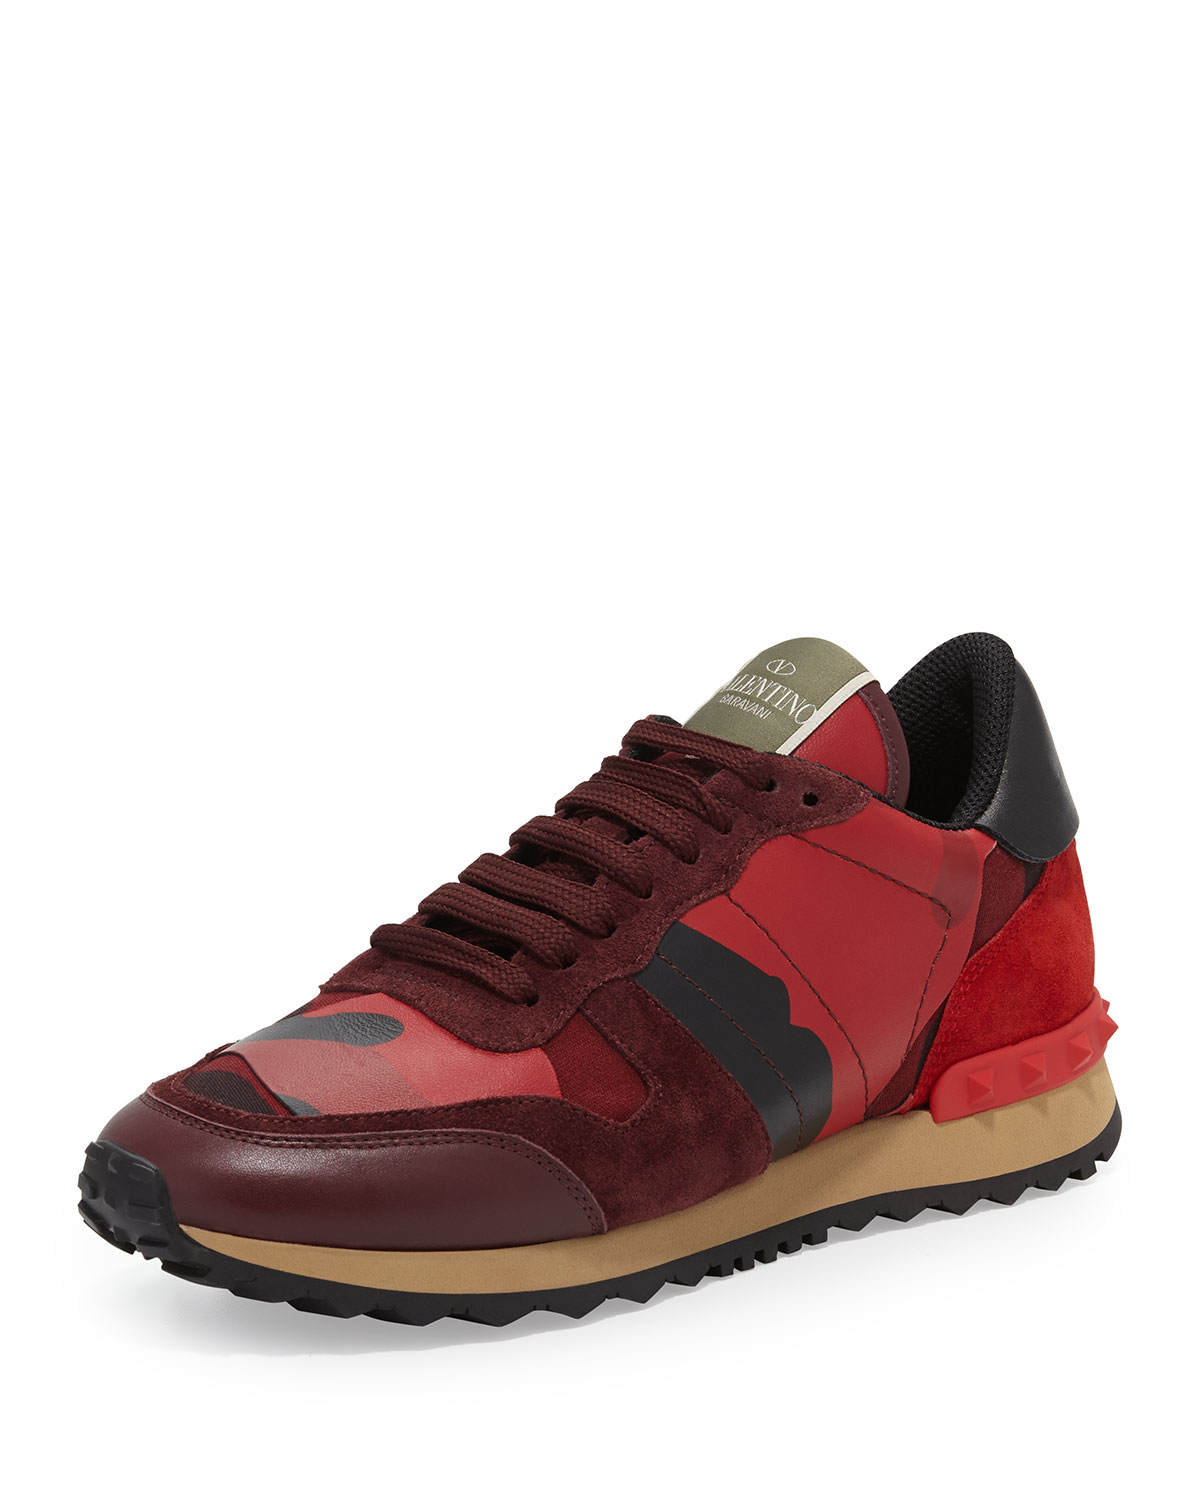 valentino 39 rockrunner 39 sneakers in red for men lyst. Black Bedroom Furniture Sets. Home Design Ideas